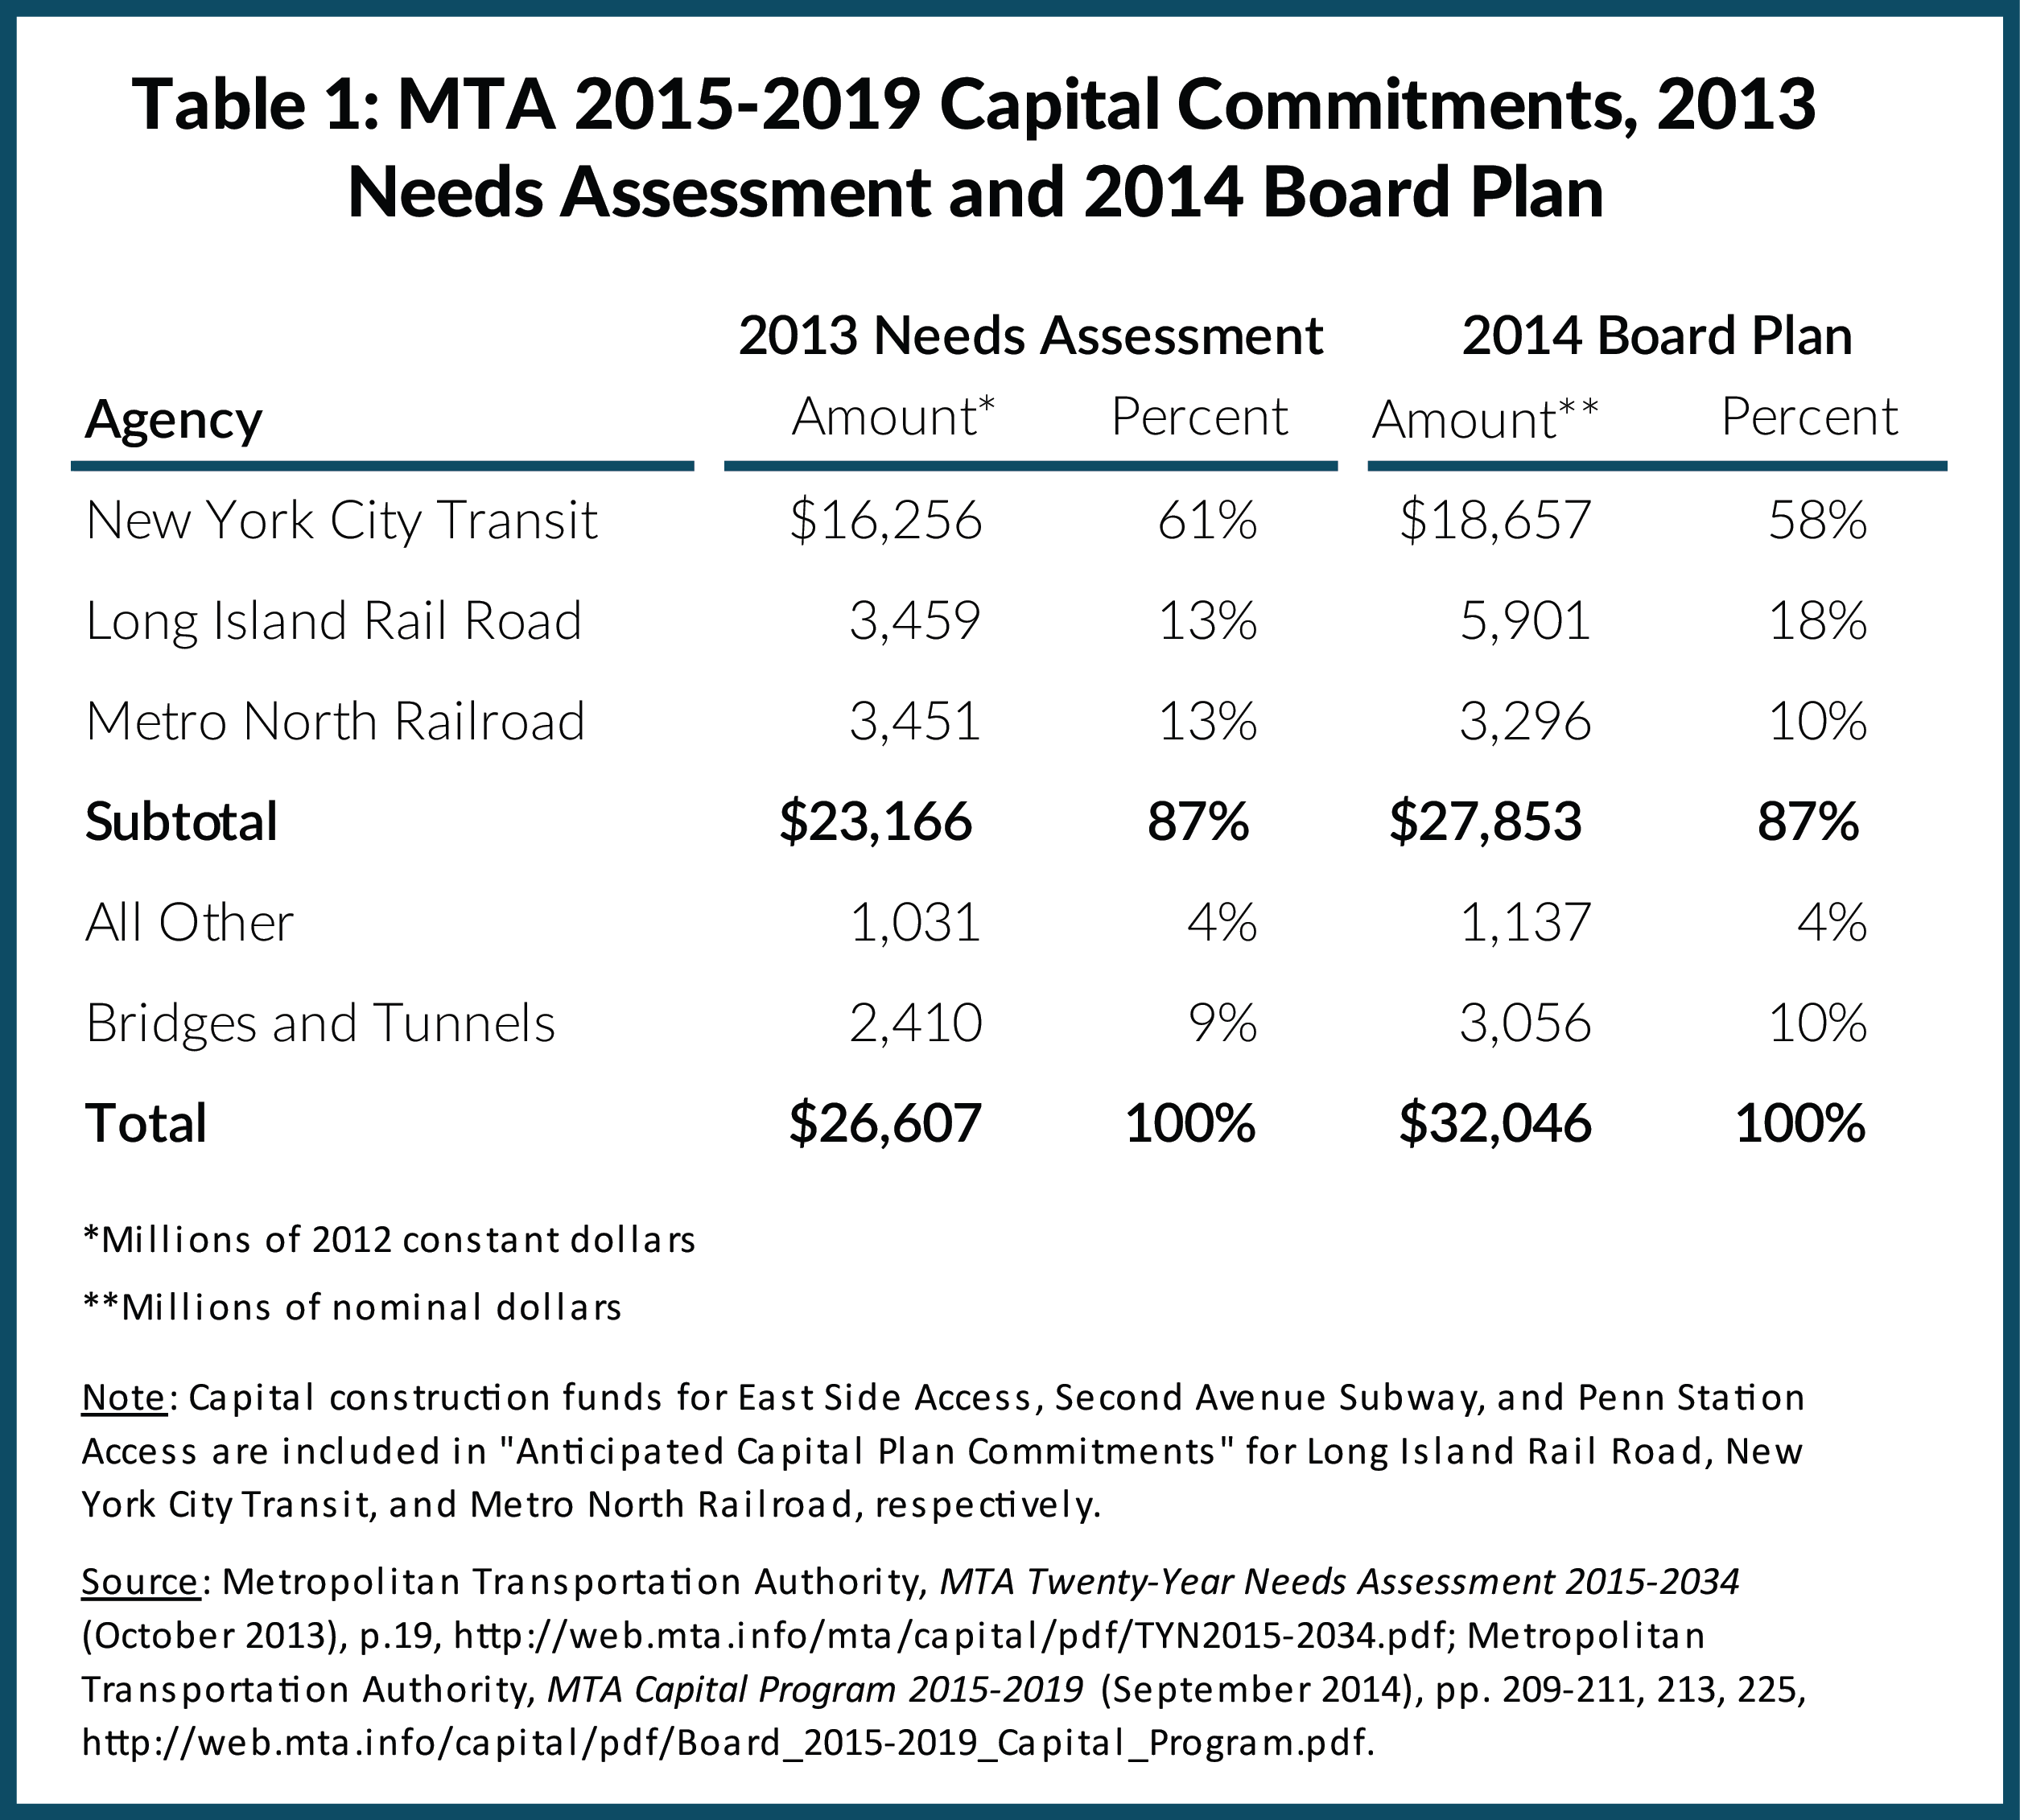 Table 1: MTA 2015-2019 Capital Commitments, 2013 Needs Assessment and 2014 Board Plan